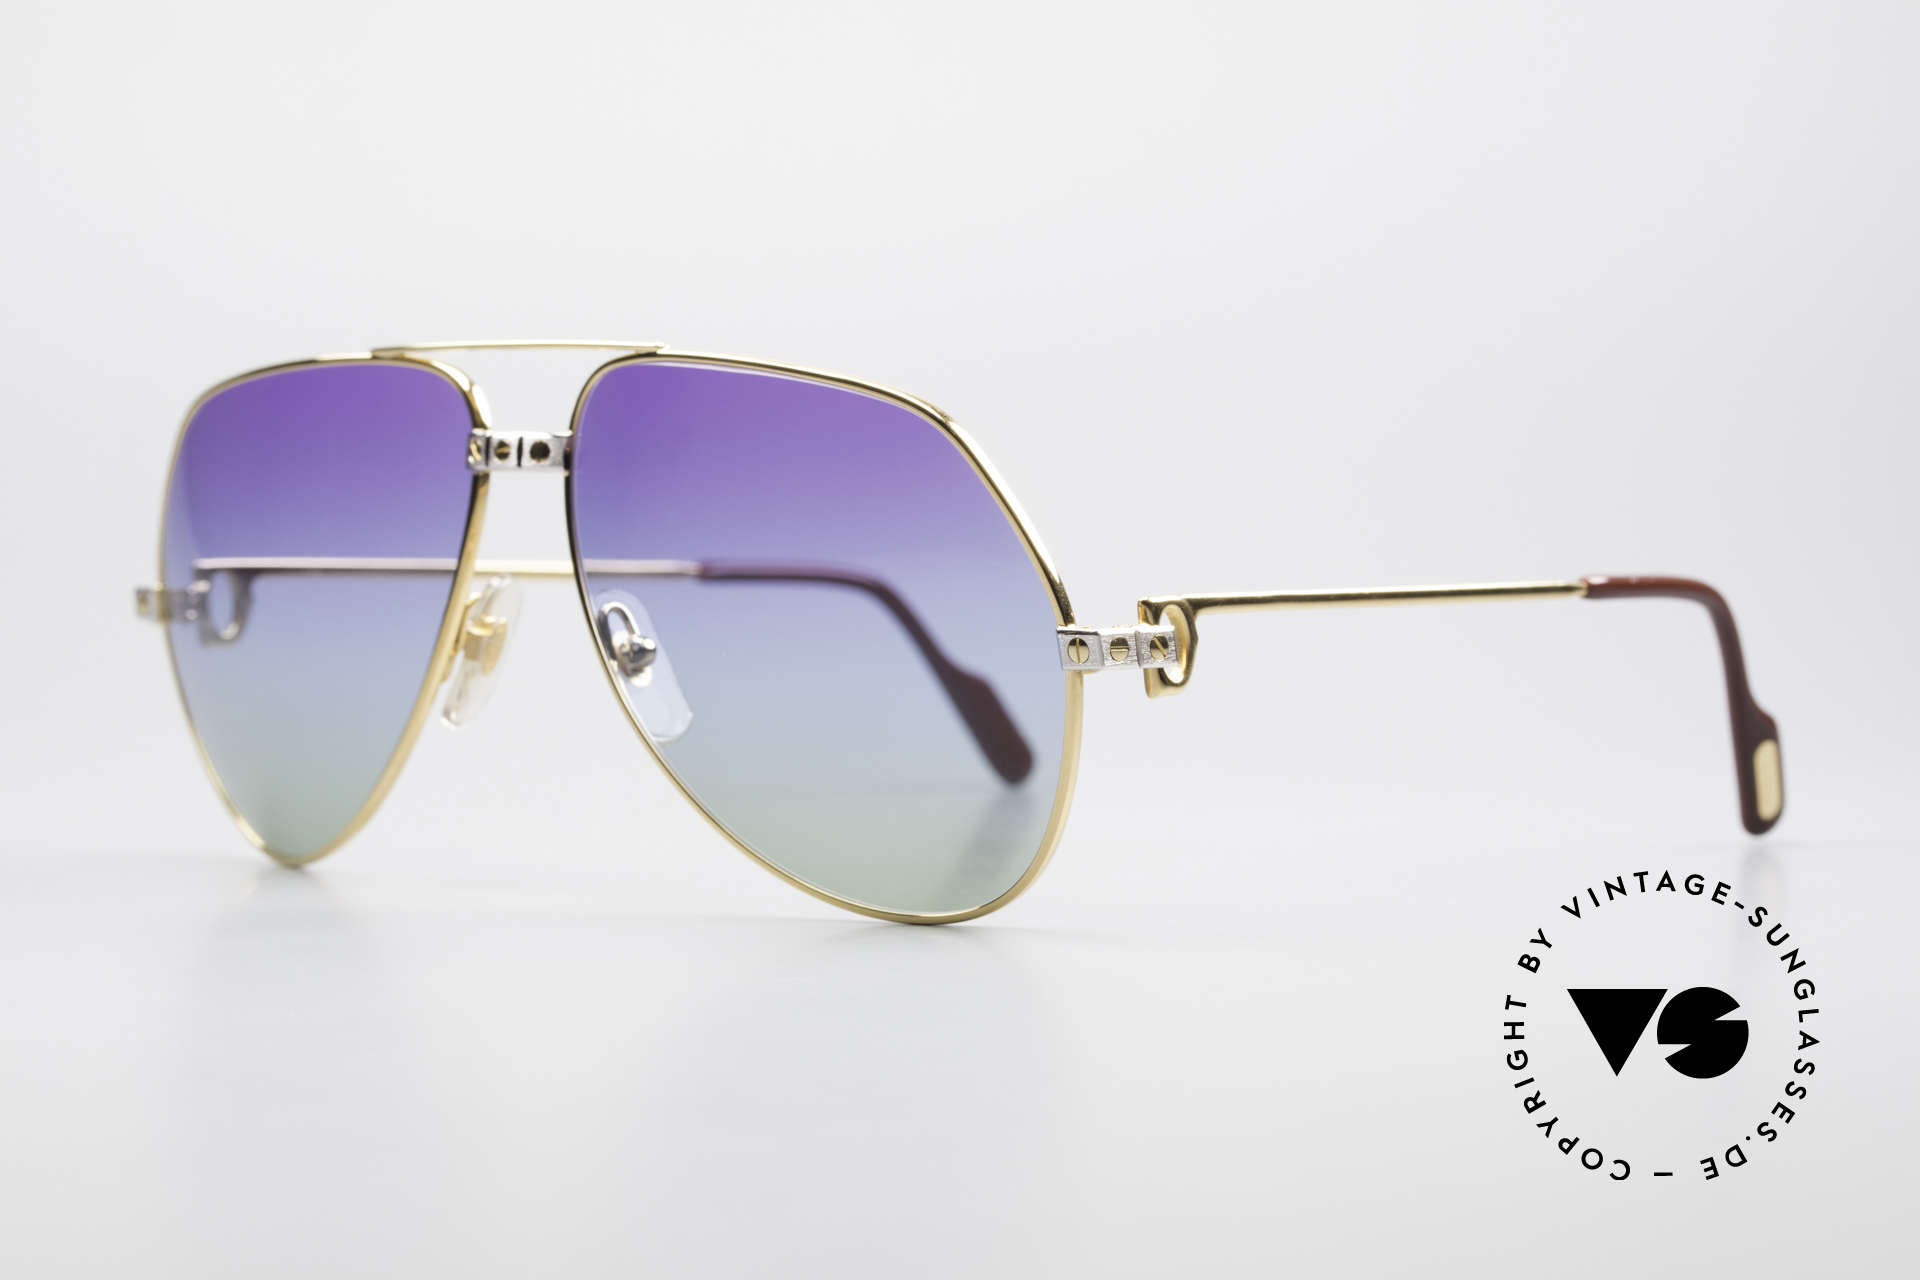 Cartier Vendome Santos - L Customized Purple Polar Lights, 22ct GOLD-PLATED frame in LARGE SIZE 62-14, 140!, Made for Men